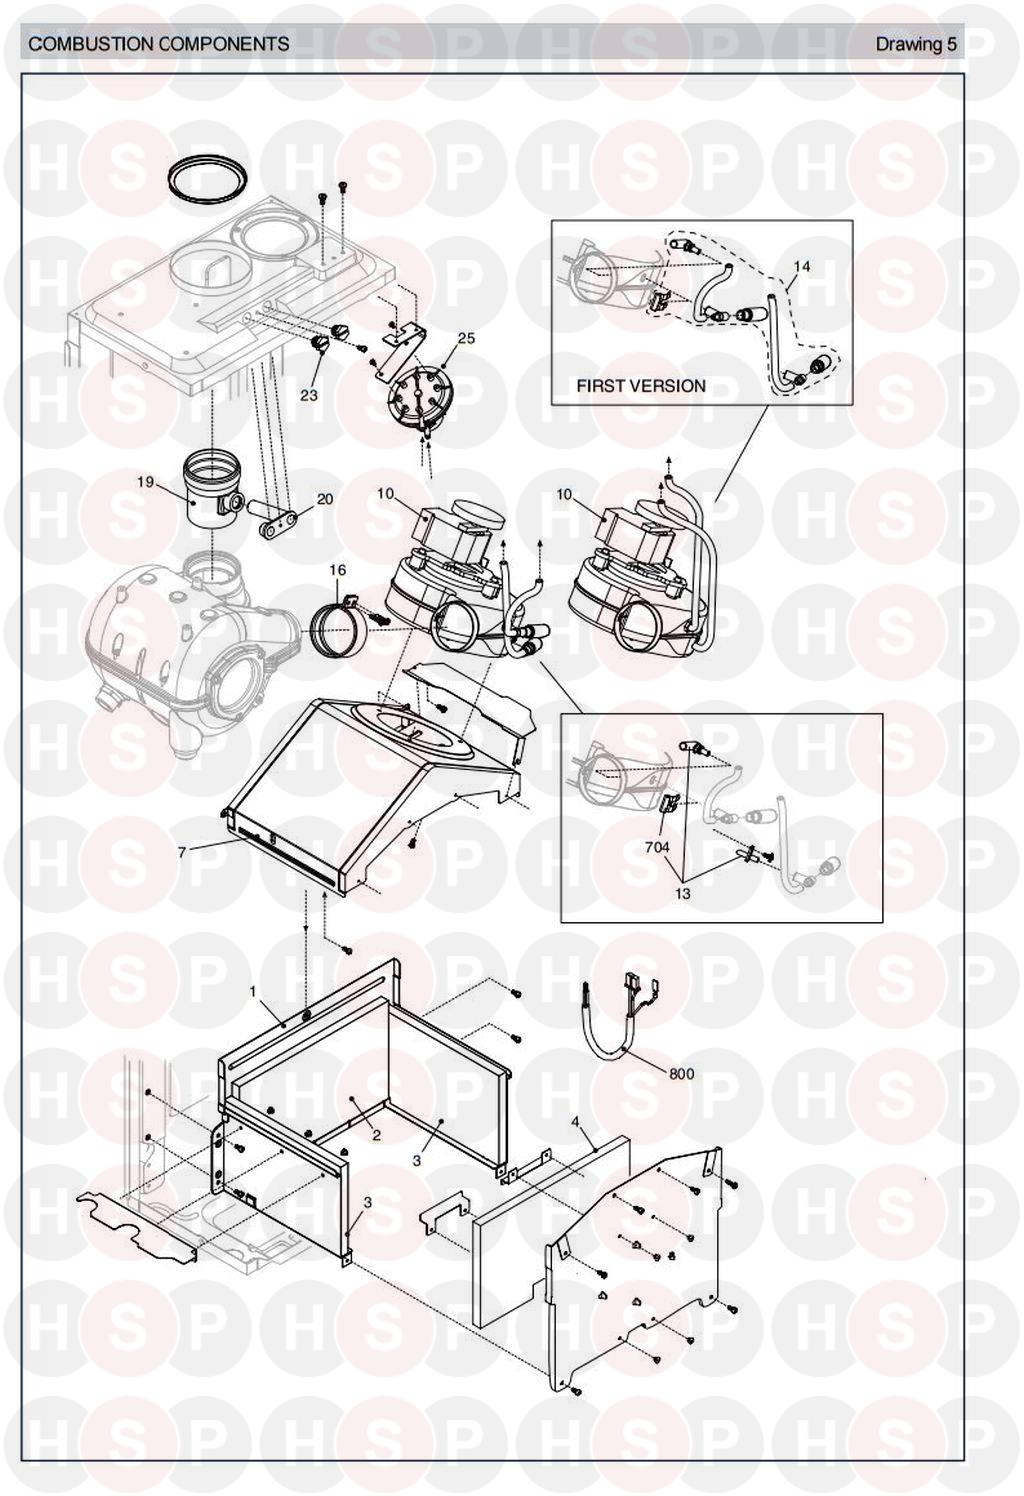 Vokera SABRE 29 HE Appliance Diagram (COMBUSTION